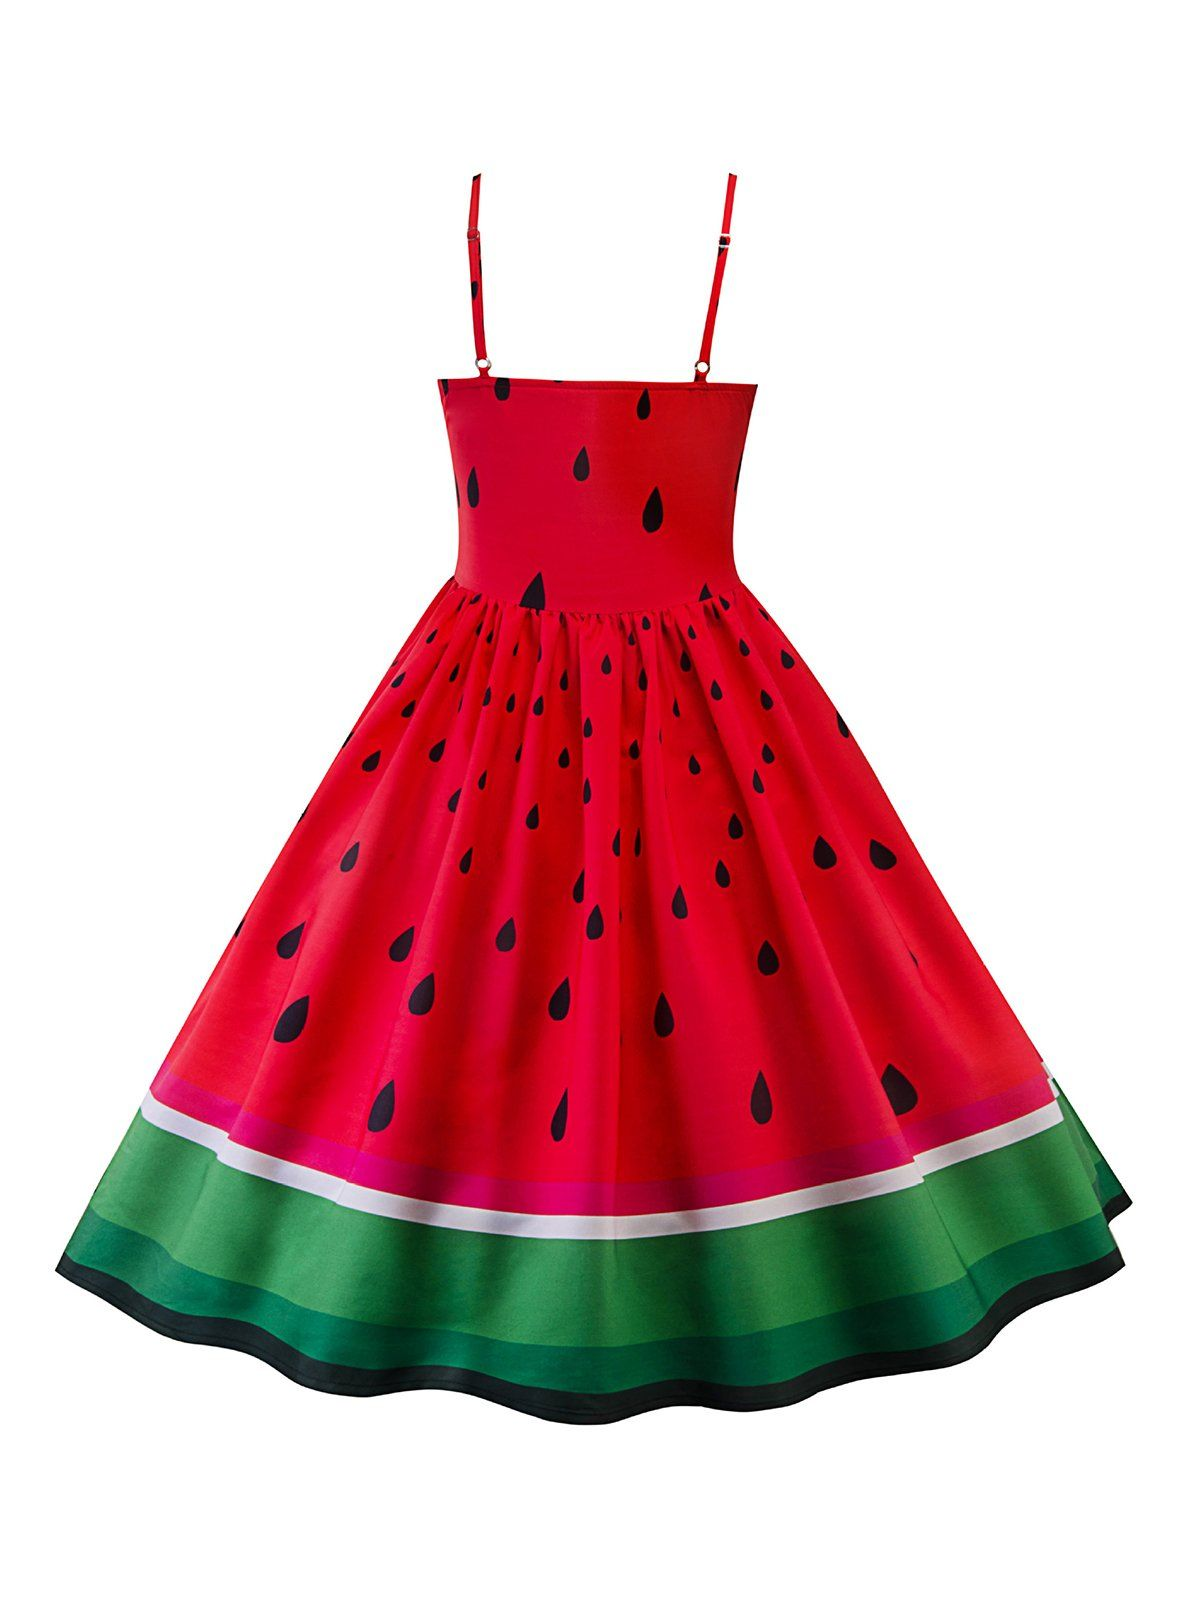 c9172df987d Red 1950s Watermelon Patchwork Dress – Retro Stage - Chic Vintage Dresses  and Accessories